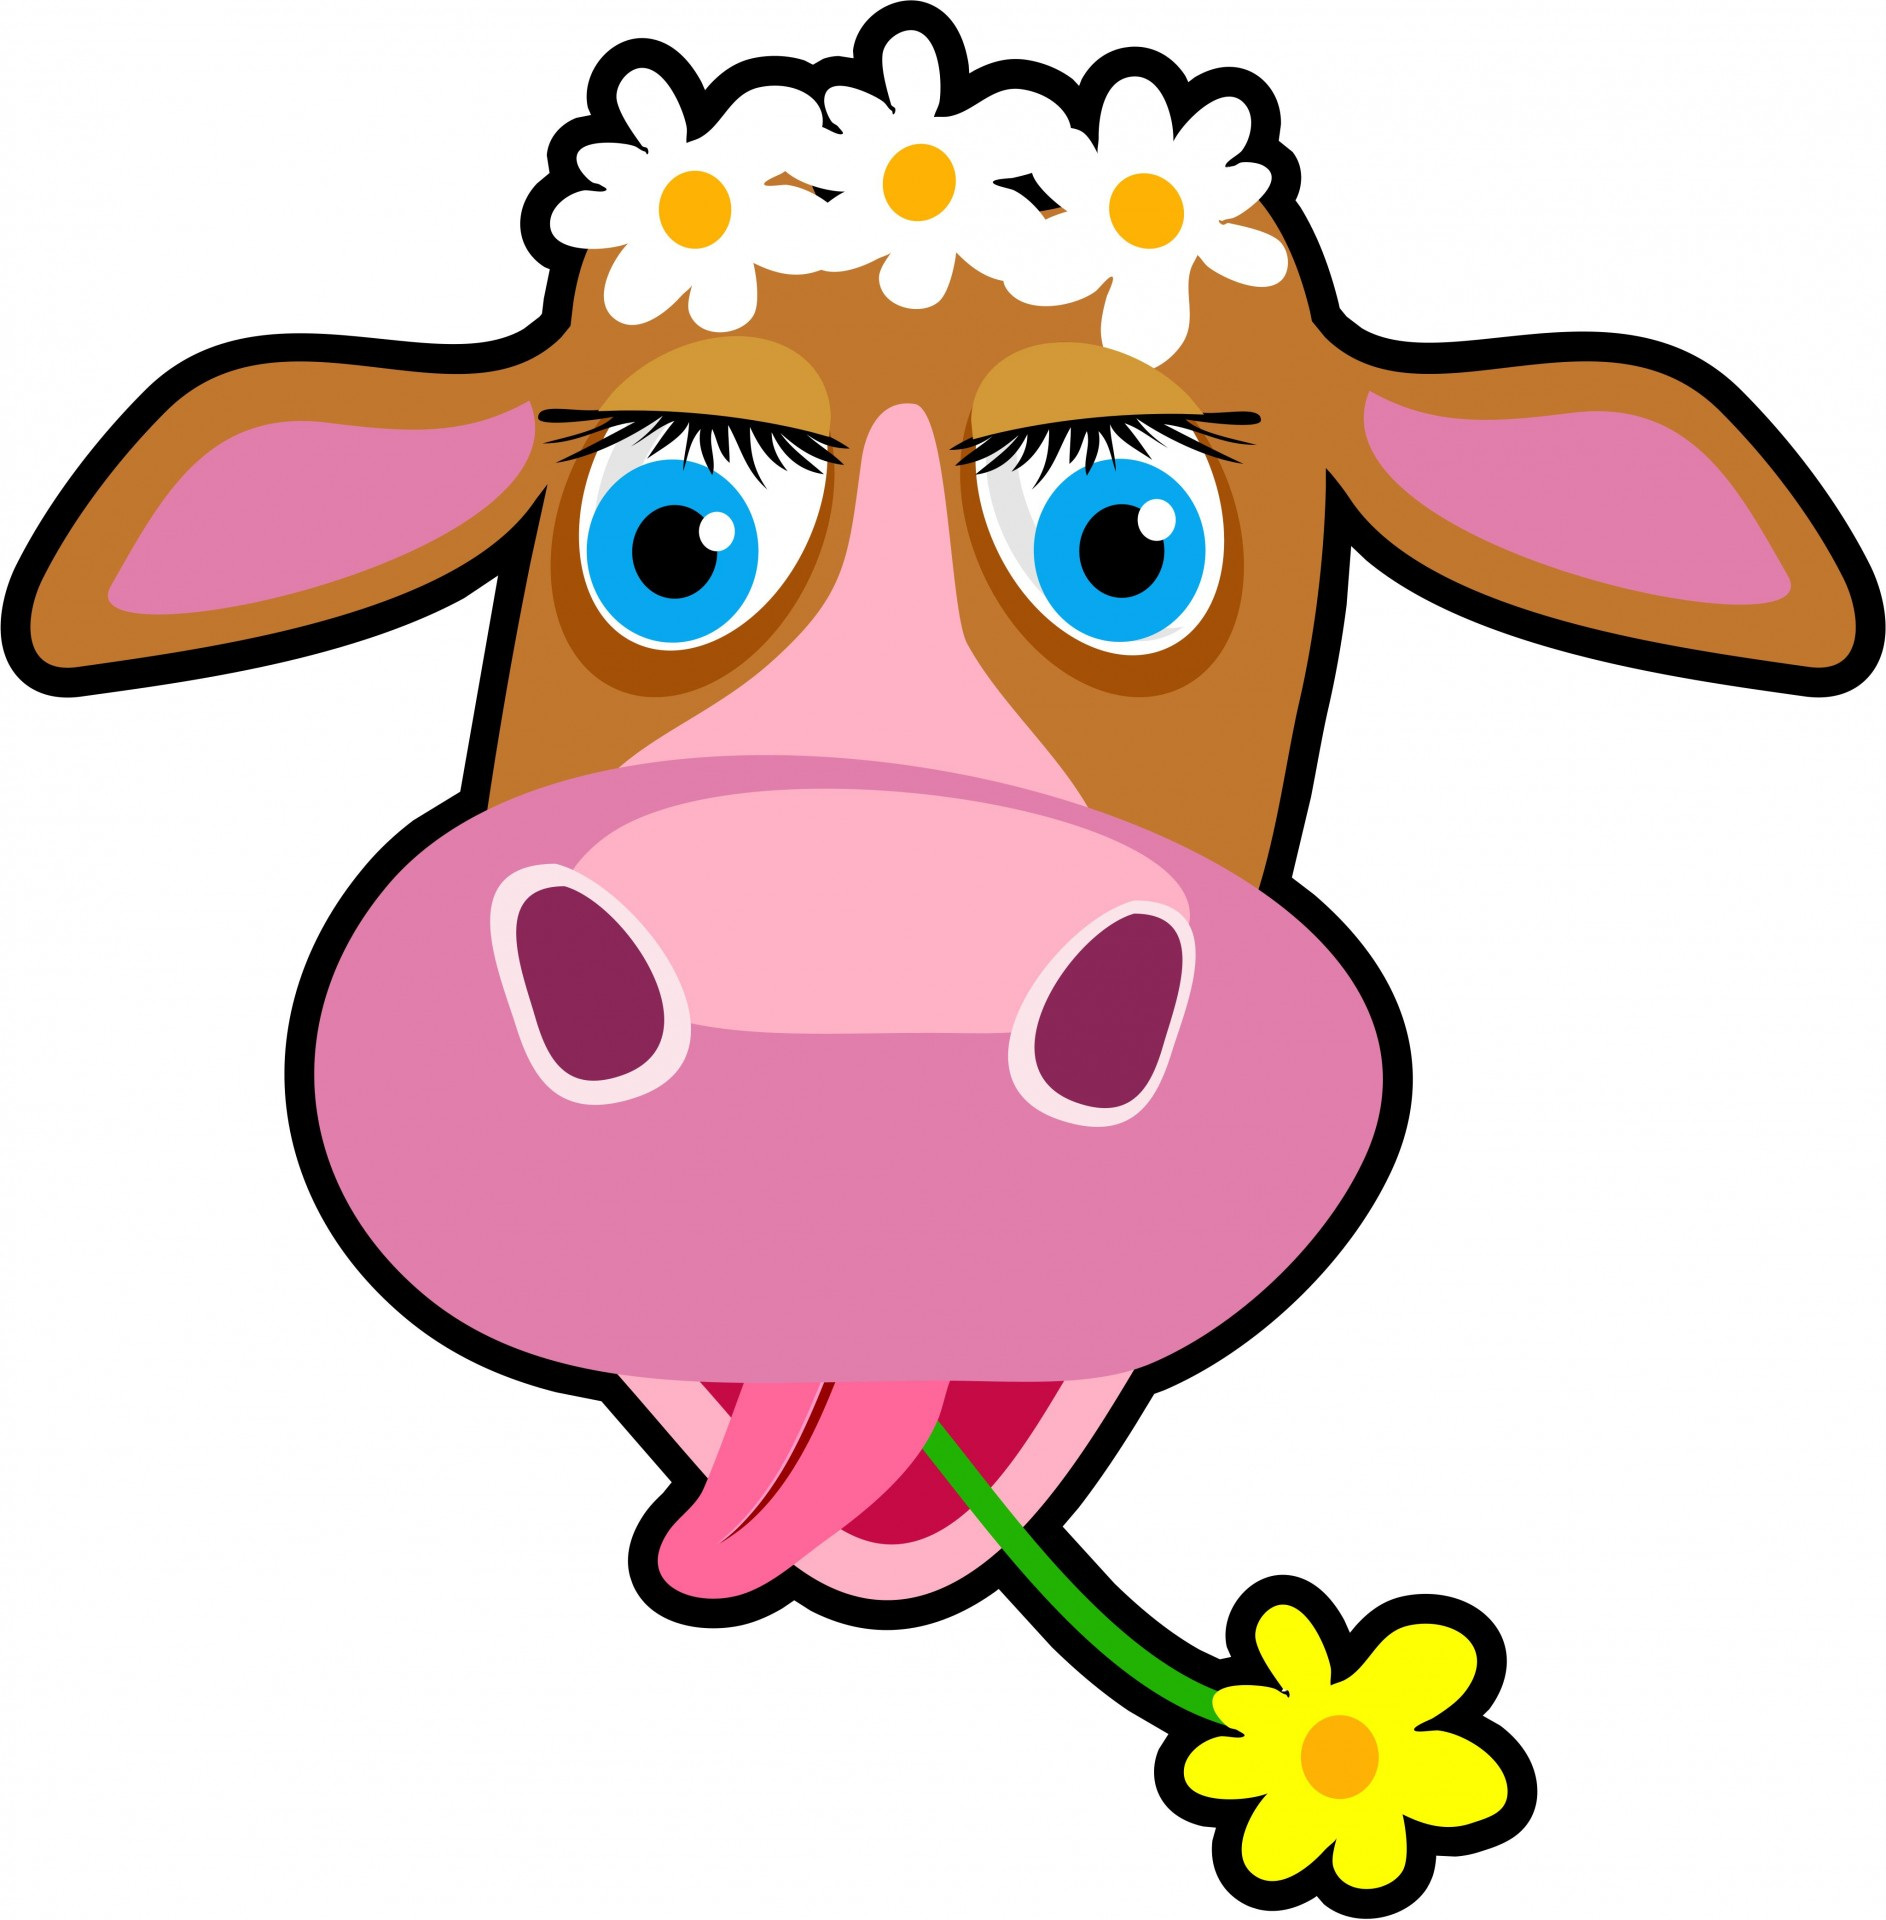 hight resolution of cow cartoonw clipart free stock photo public domain pictures